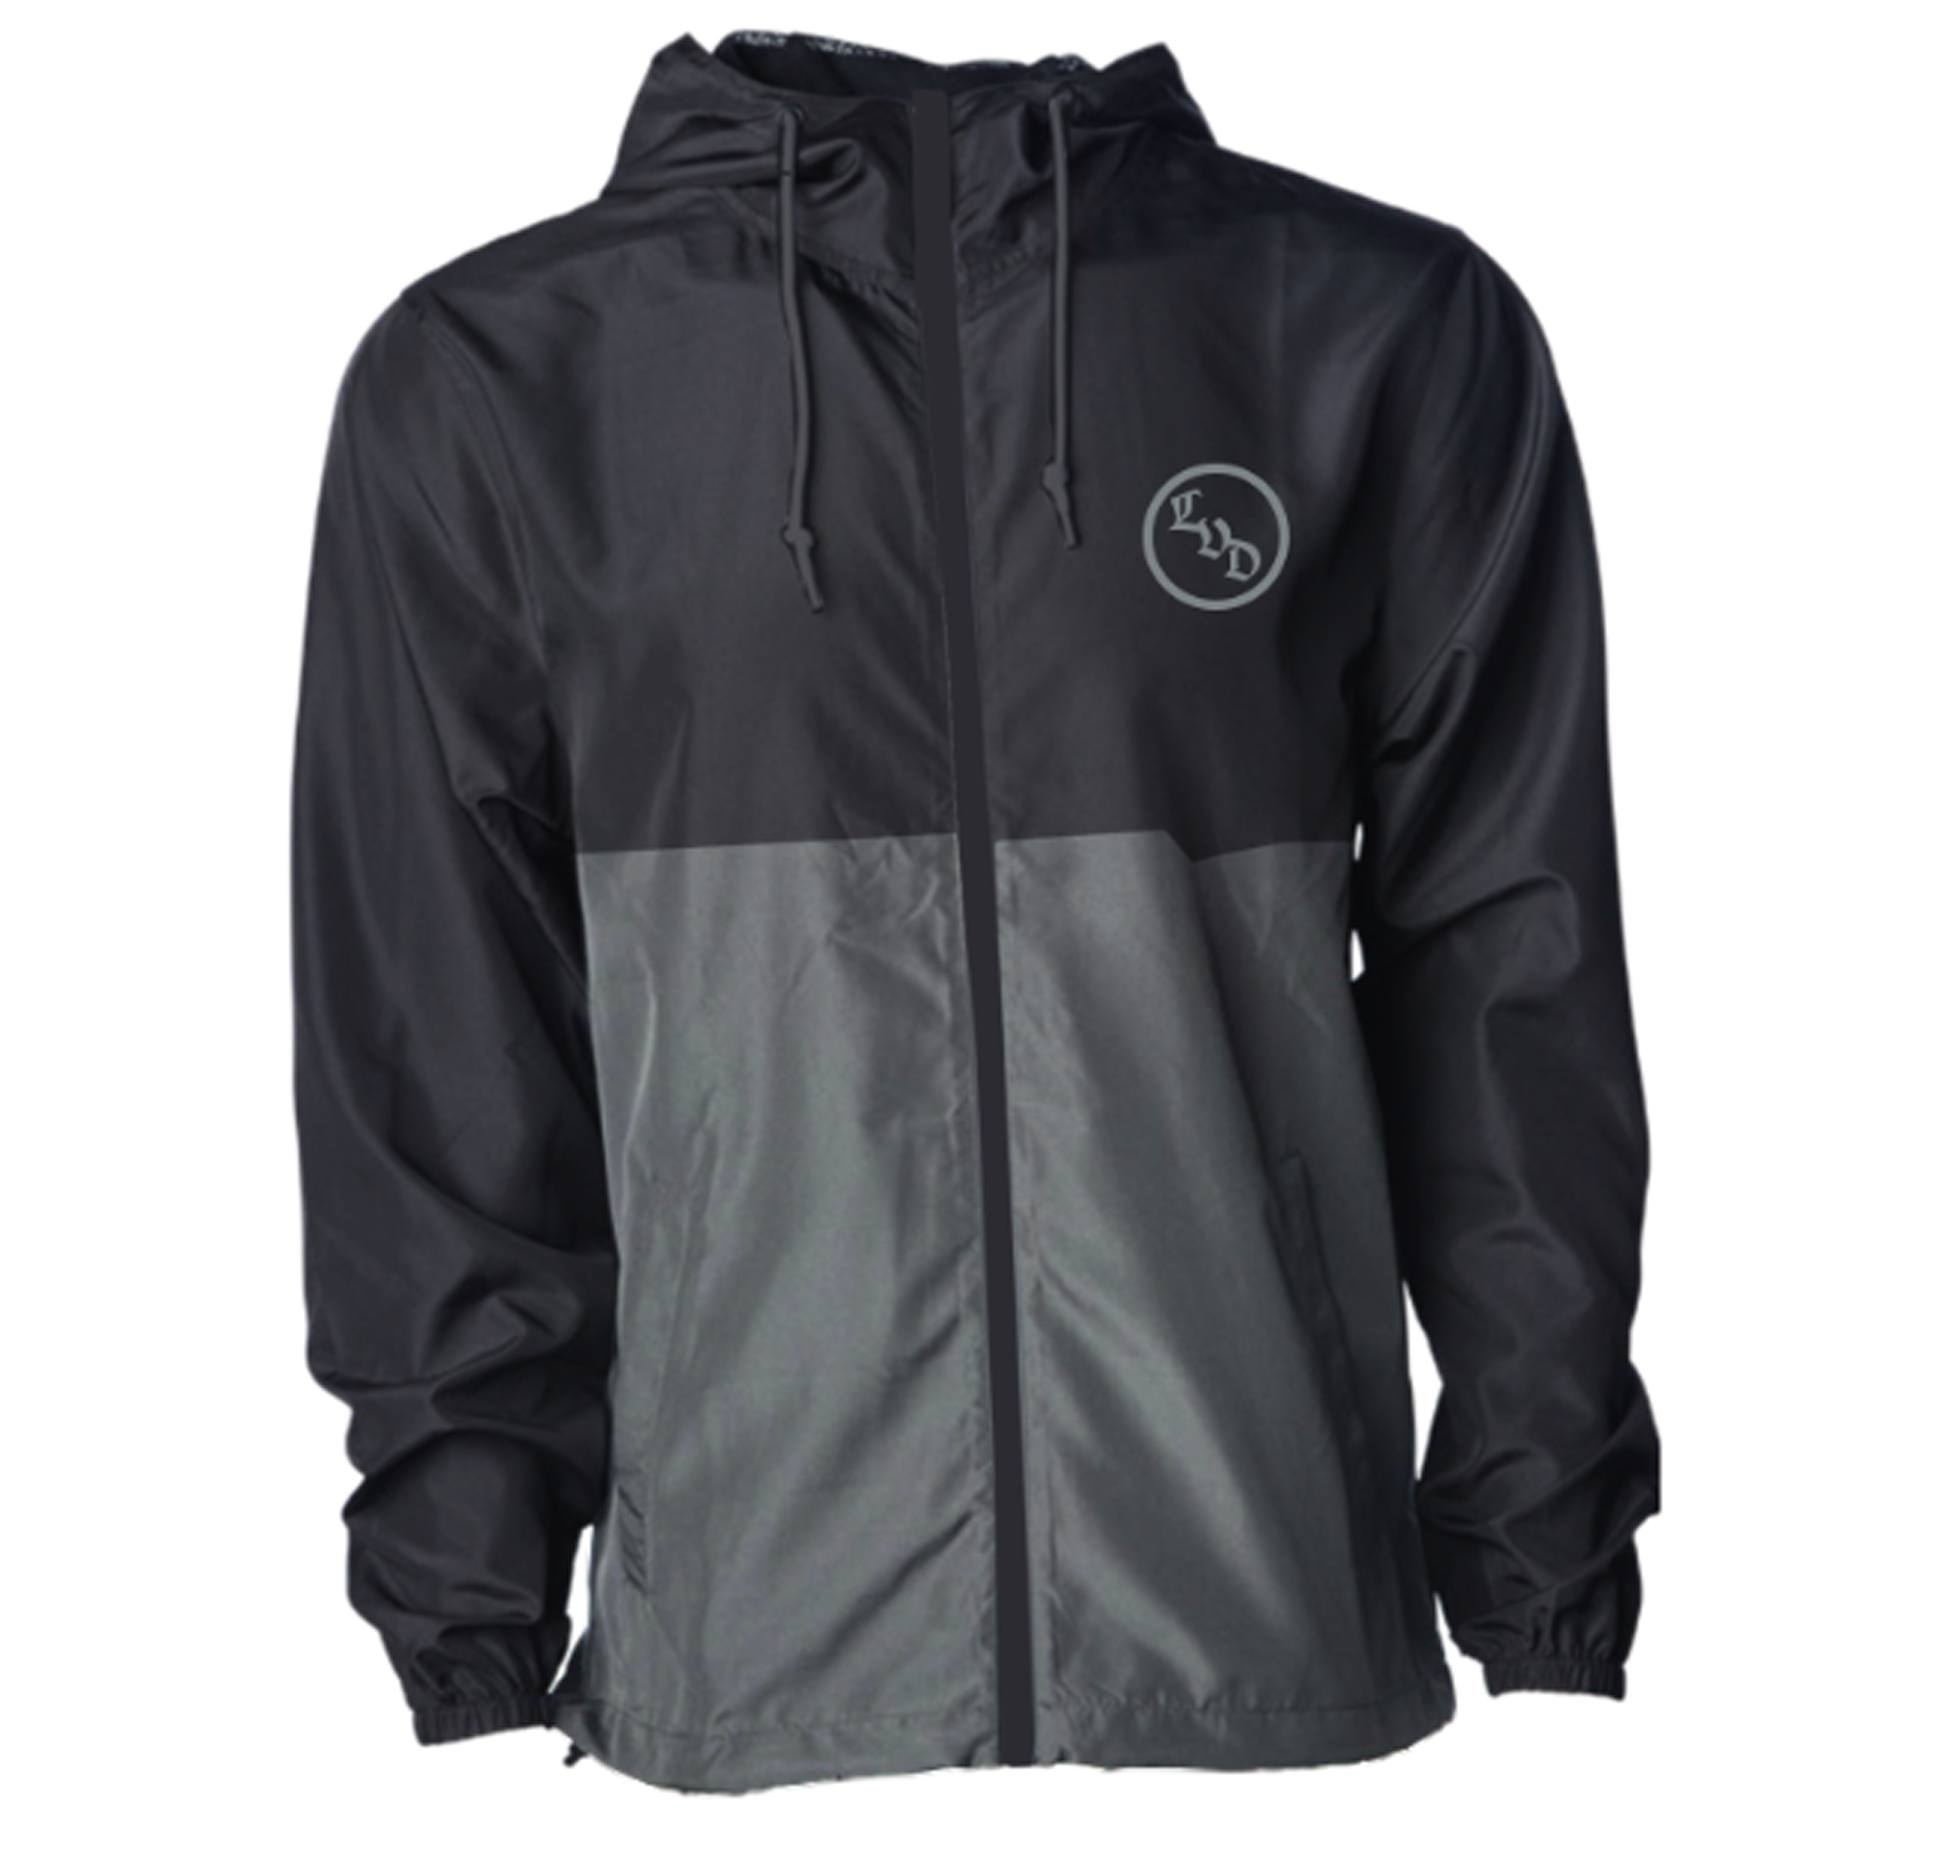 Jacket - BREAKTHROUGH JACKET (STORM WINDBREAKER)